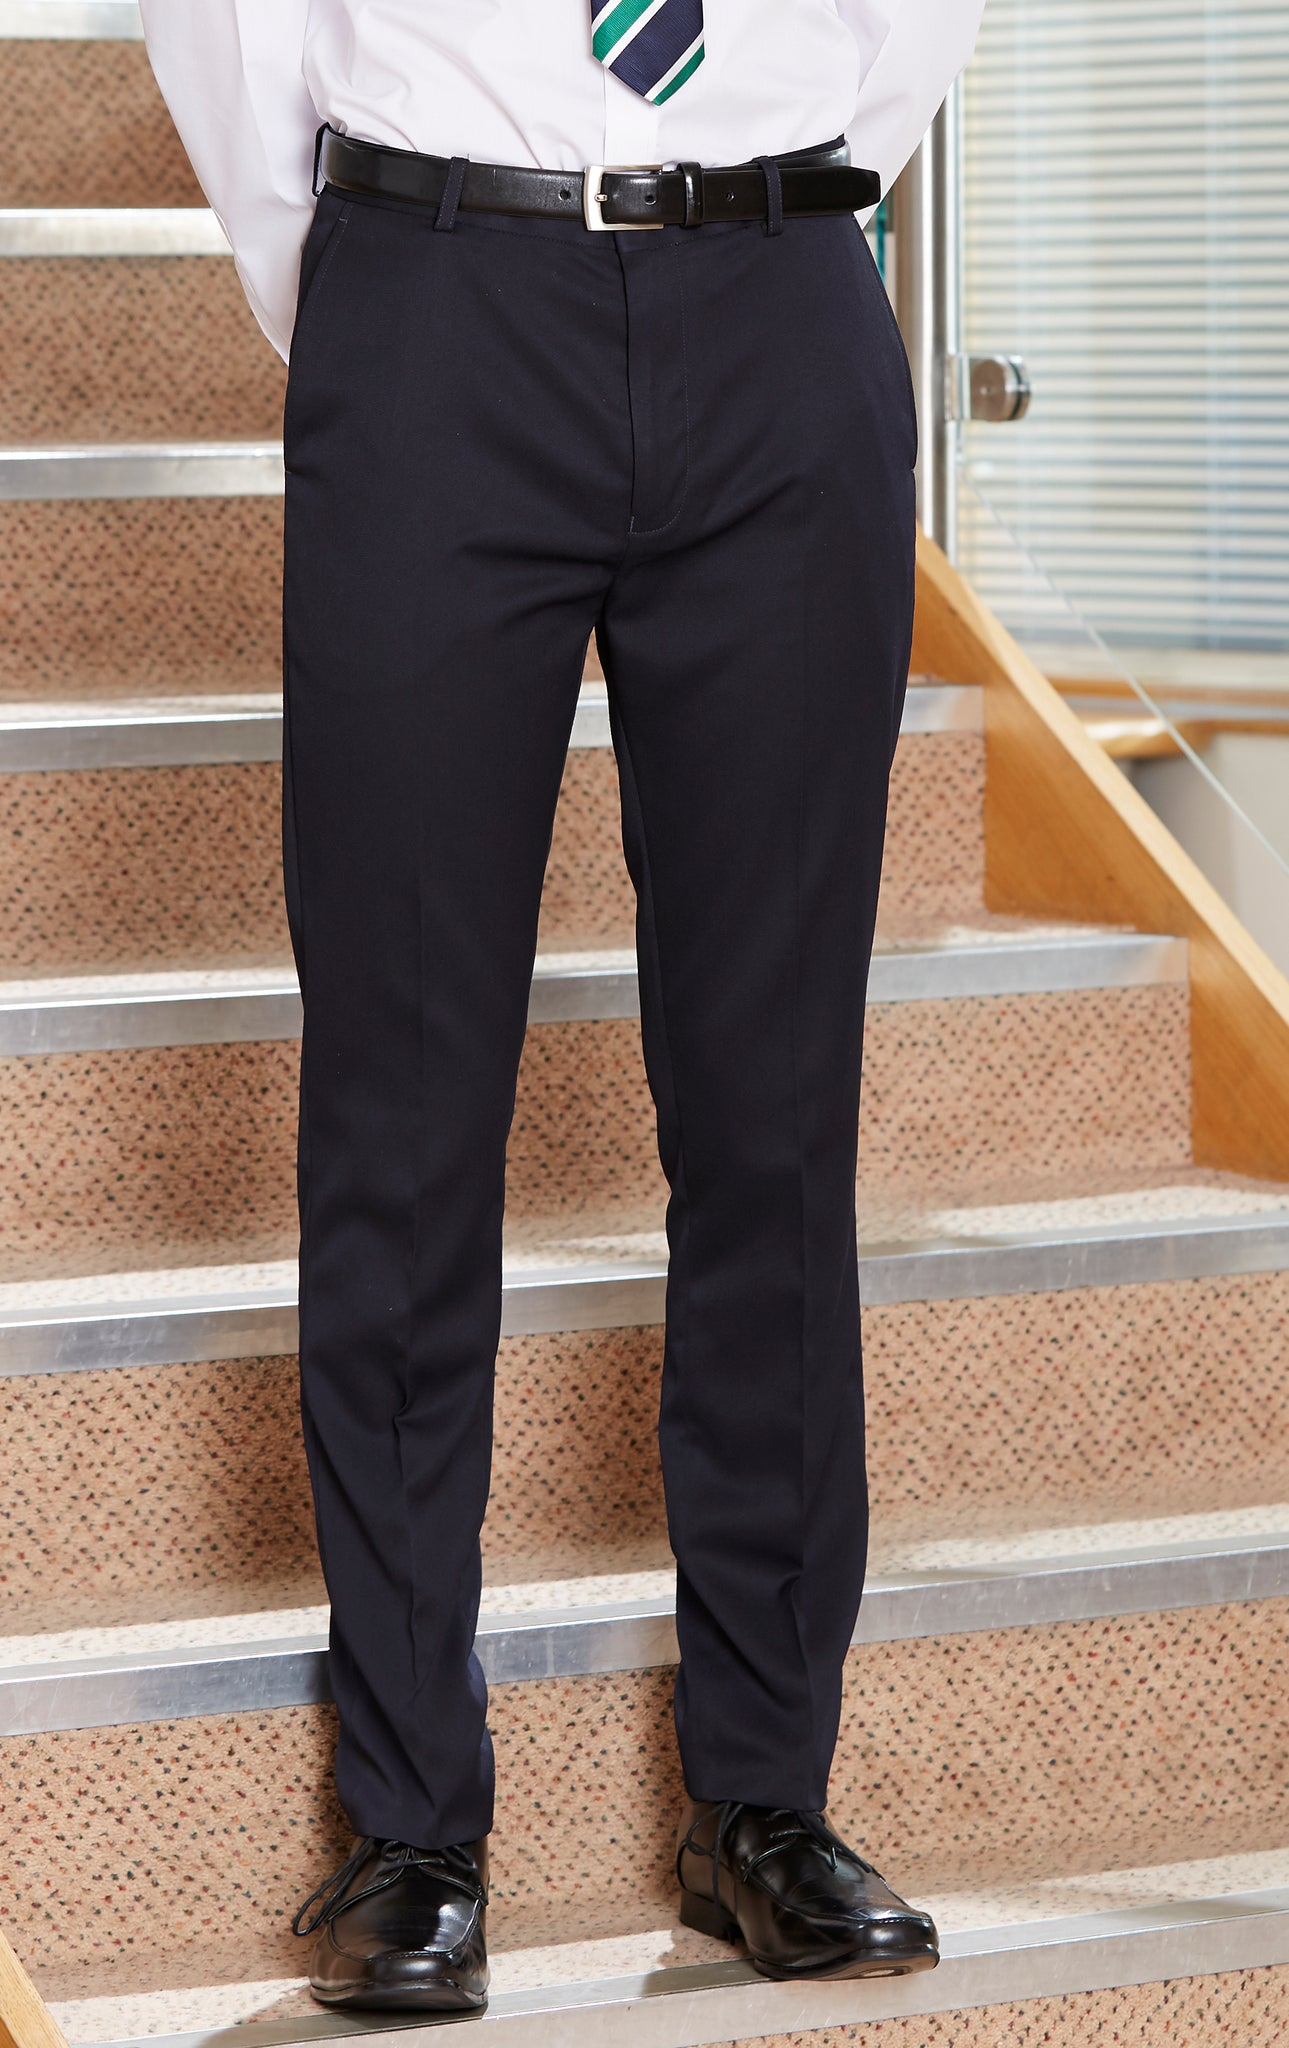 Boys Skinny BT Trousers - Swifts Uniforms